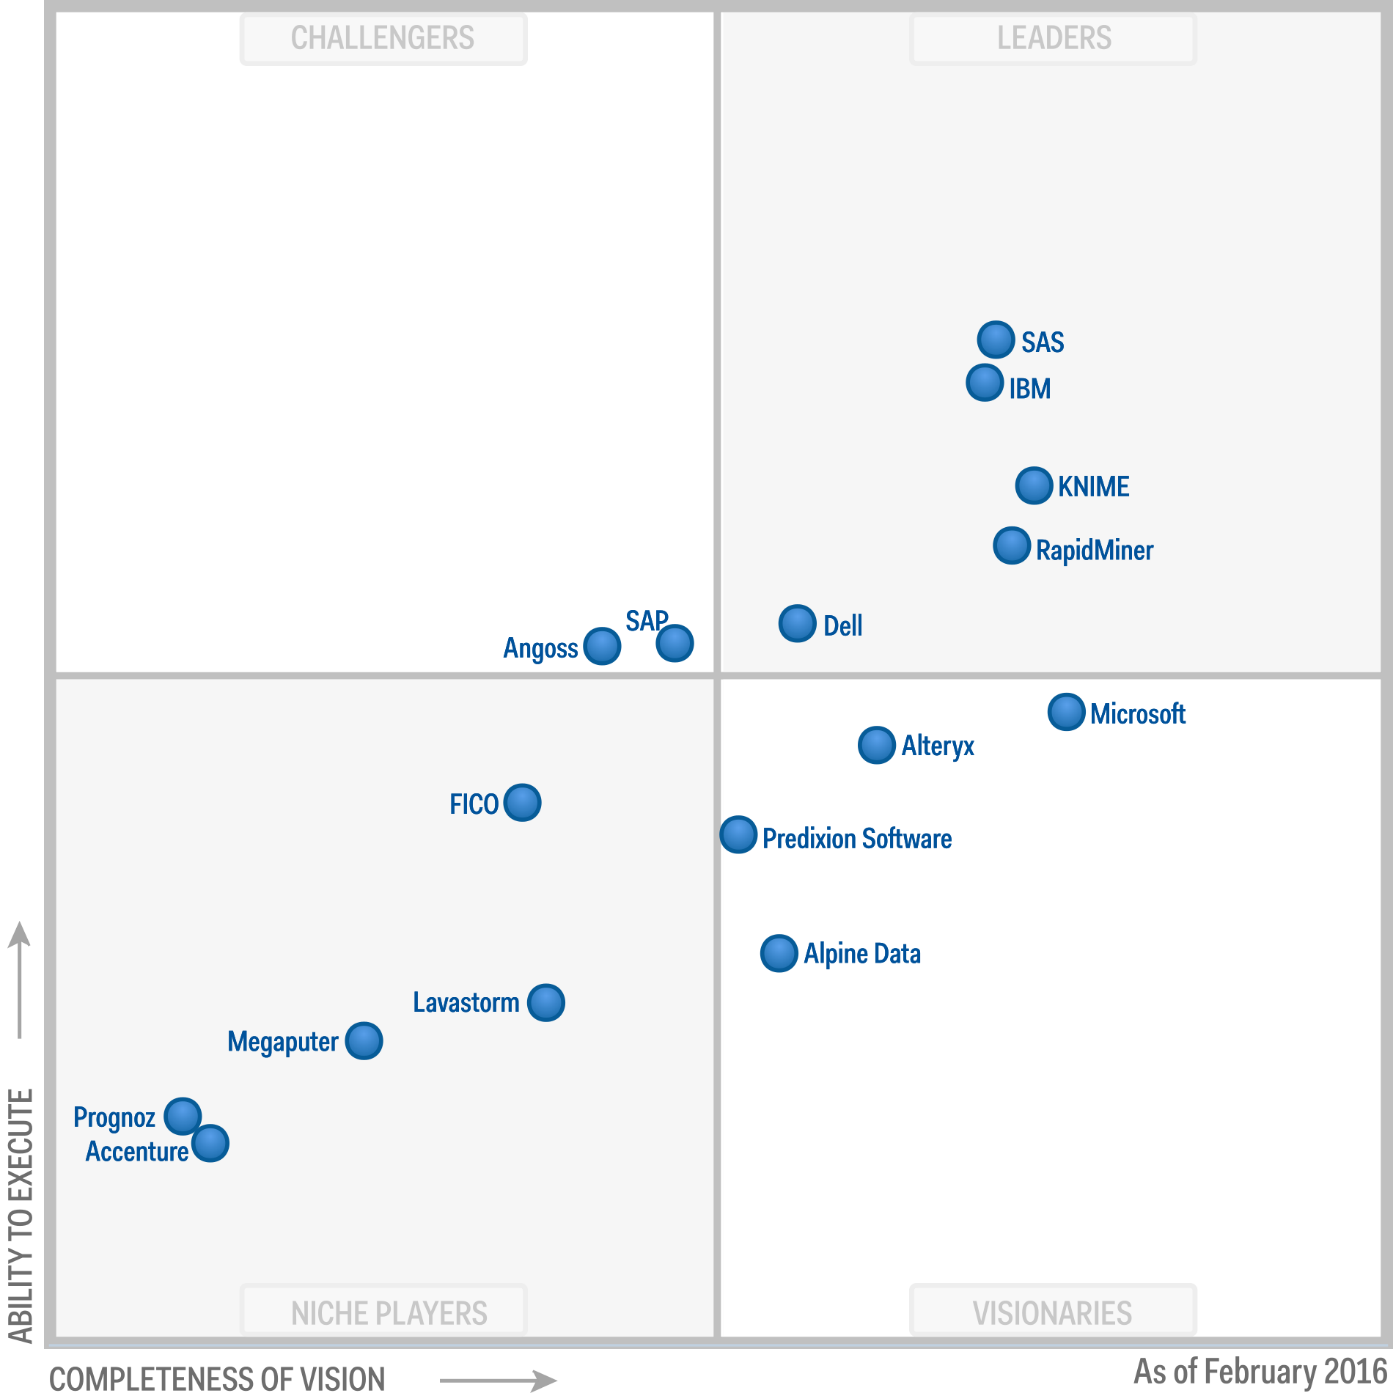 Magic Quadrant for Advanced Analytics Platforms 2016 (G00275788)